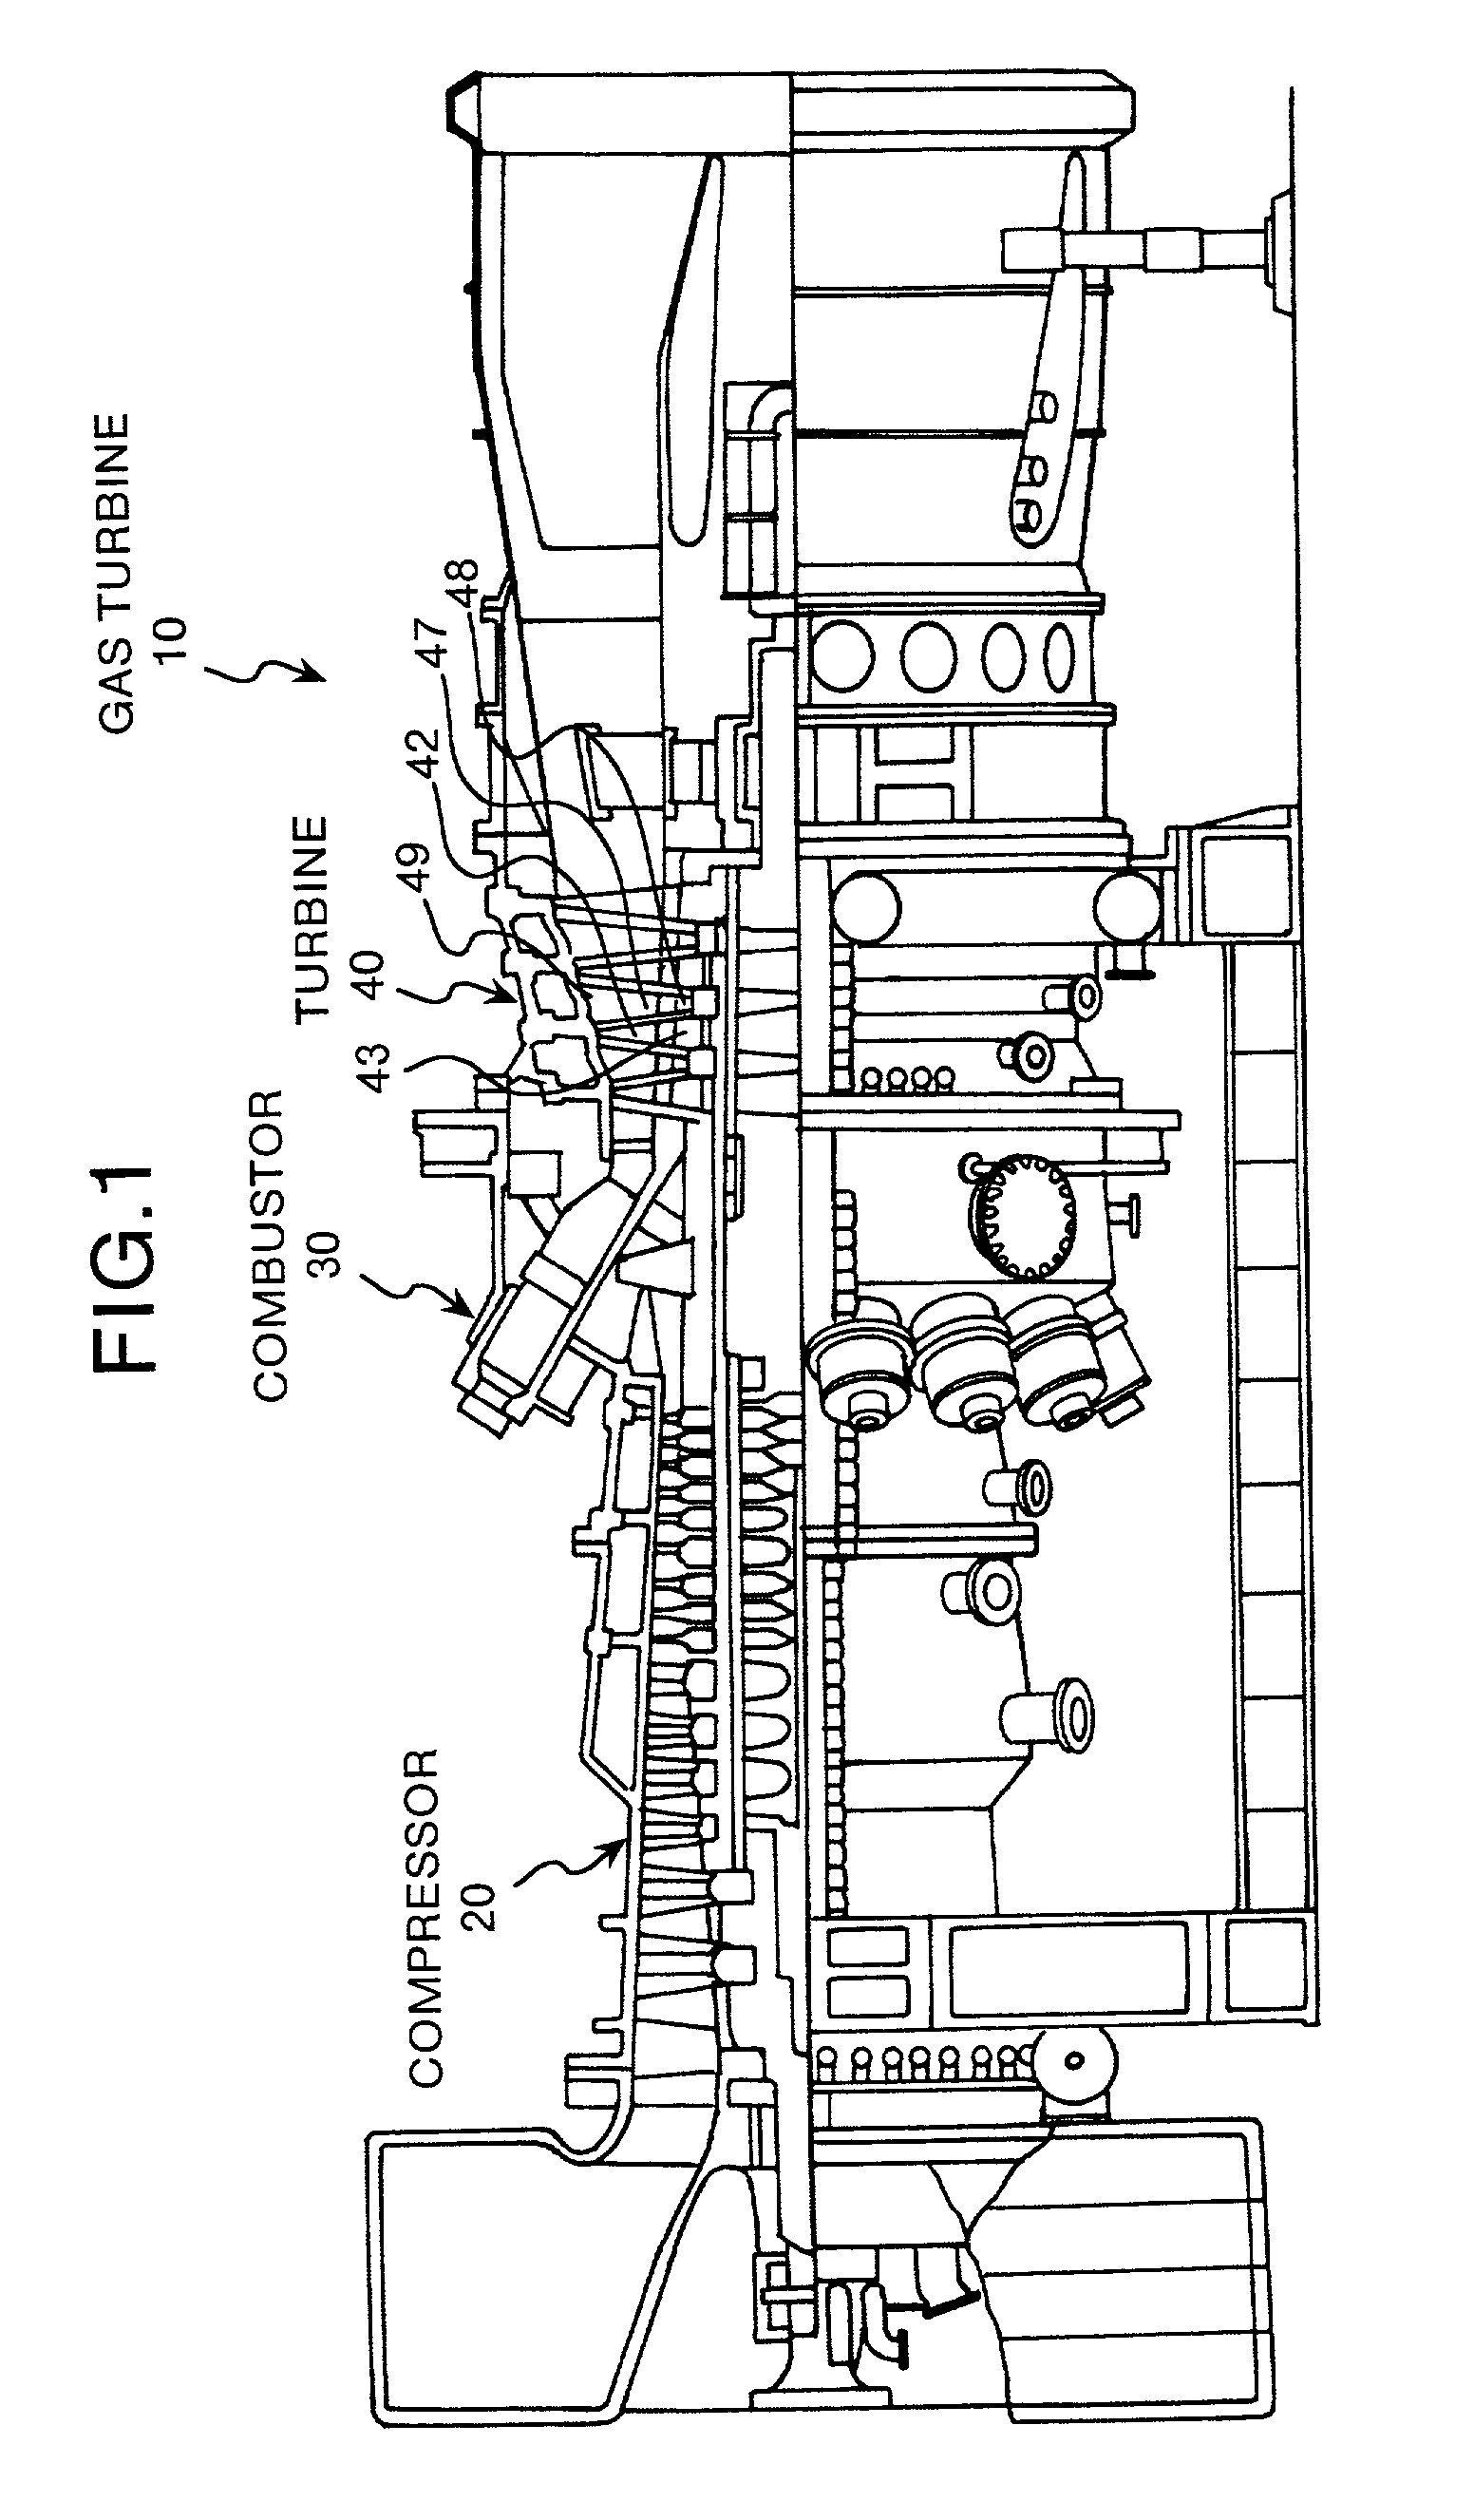 Patent US Division wall and shroud of gas turbine